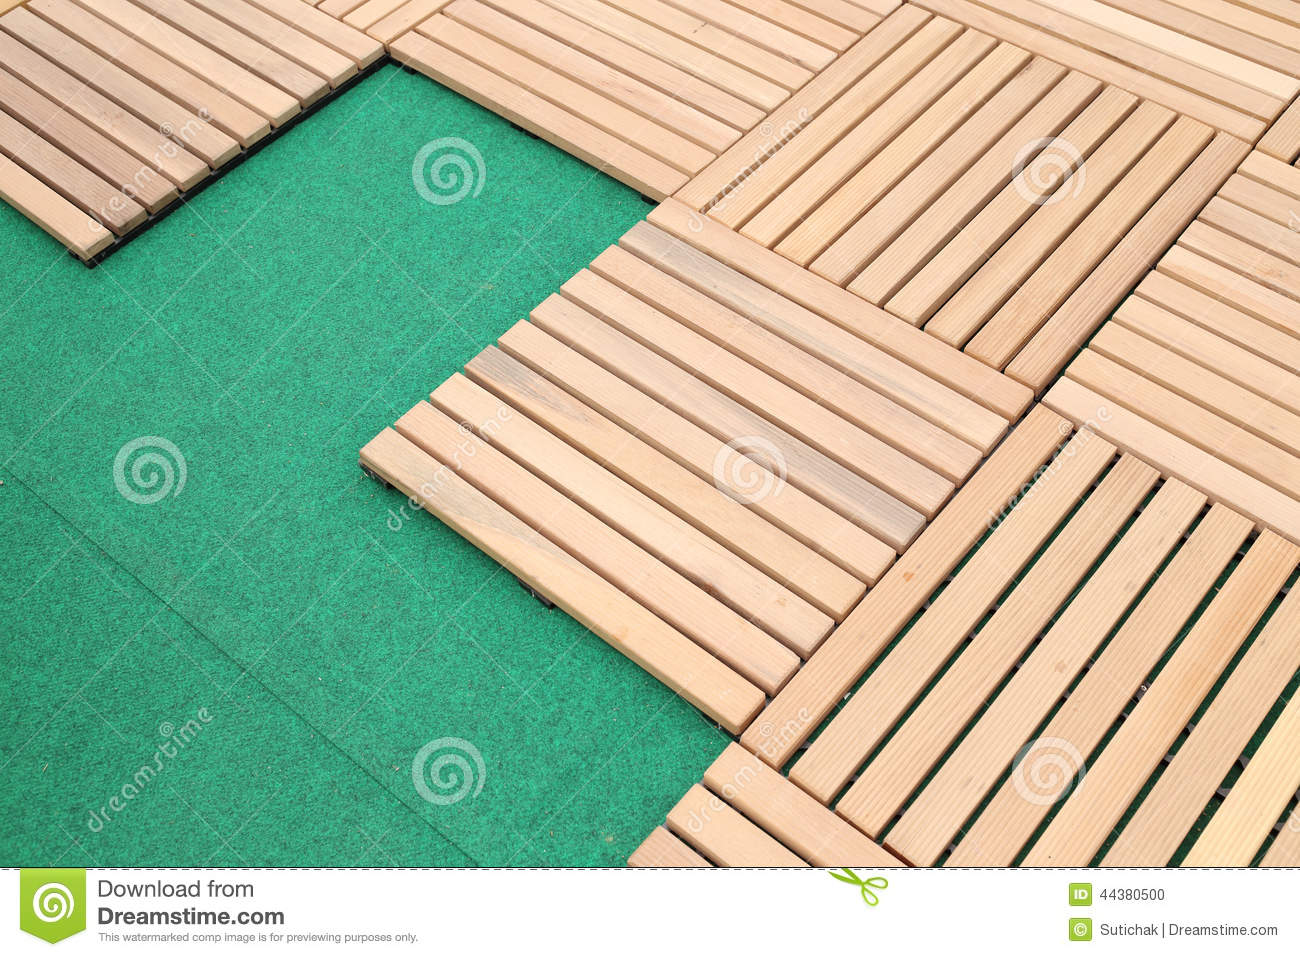 Superb img of Pics Photos Floor Wood Textures Wood Panels Wood Texture 1680x1050  with #B36218 color and 1300x957 pixels